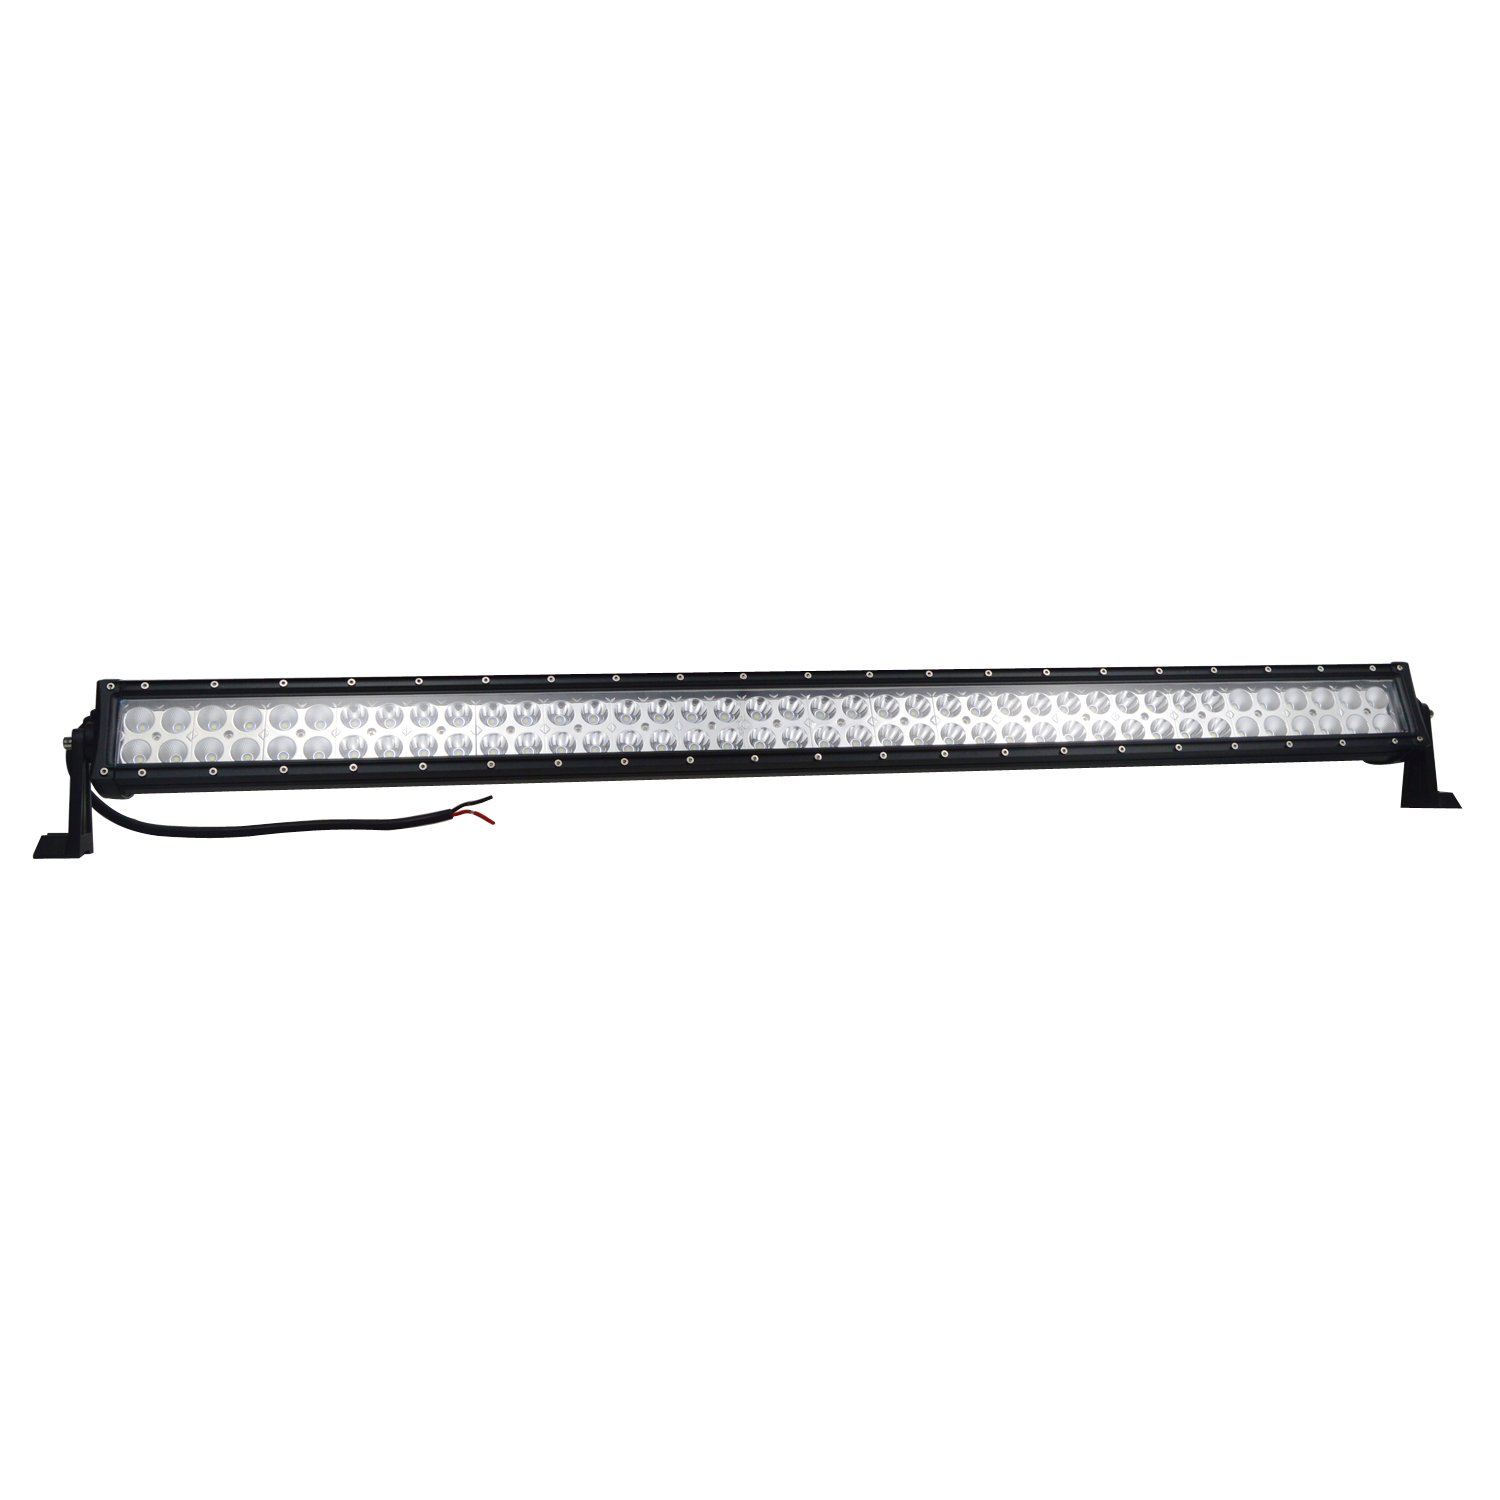 Willpower 22 in 24inch 120W Spot Flood Combo LED Work Light Bar for Truck Car ATV SUV 4X4 Jeep Truck Boat Driving Lamp 4332995189